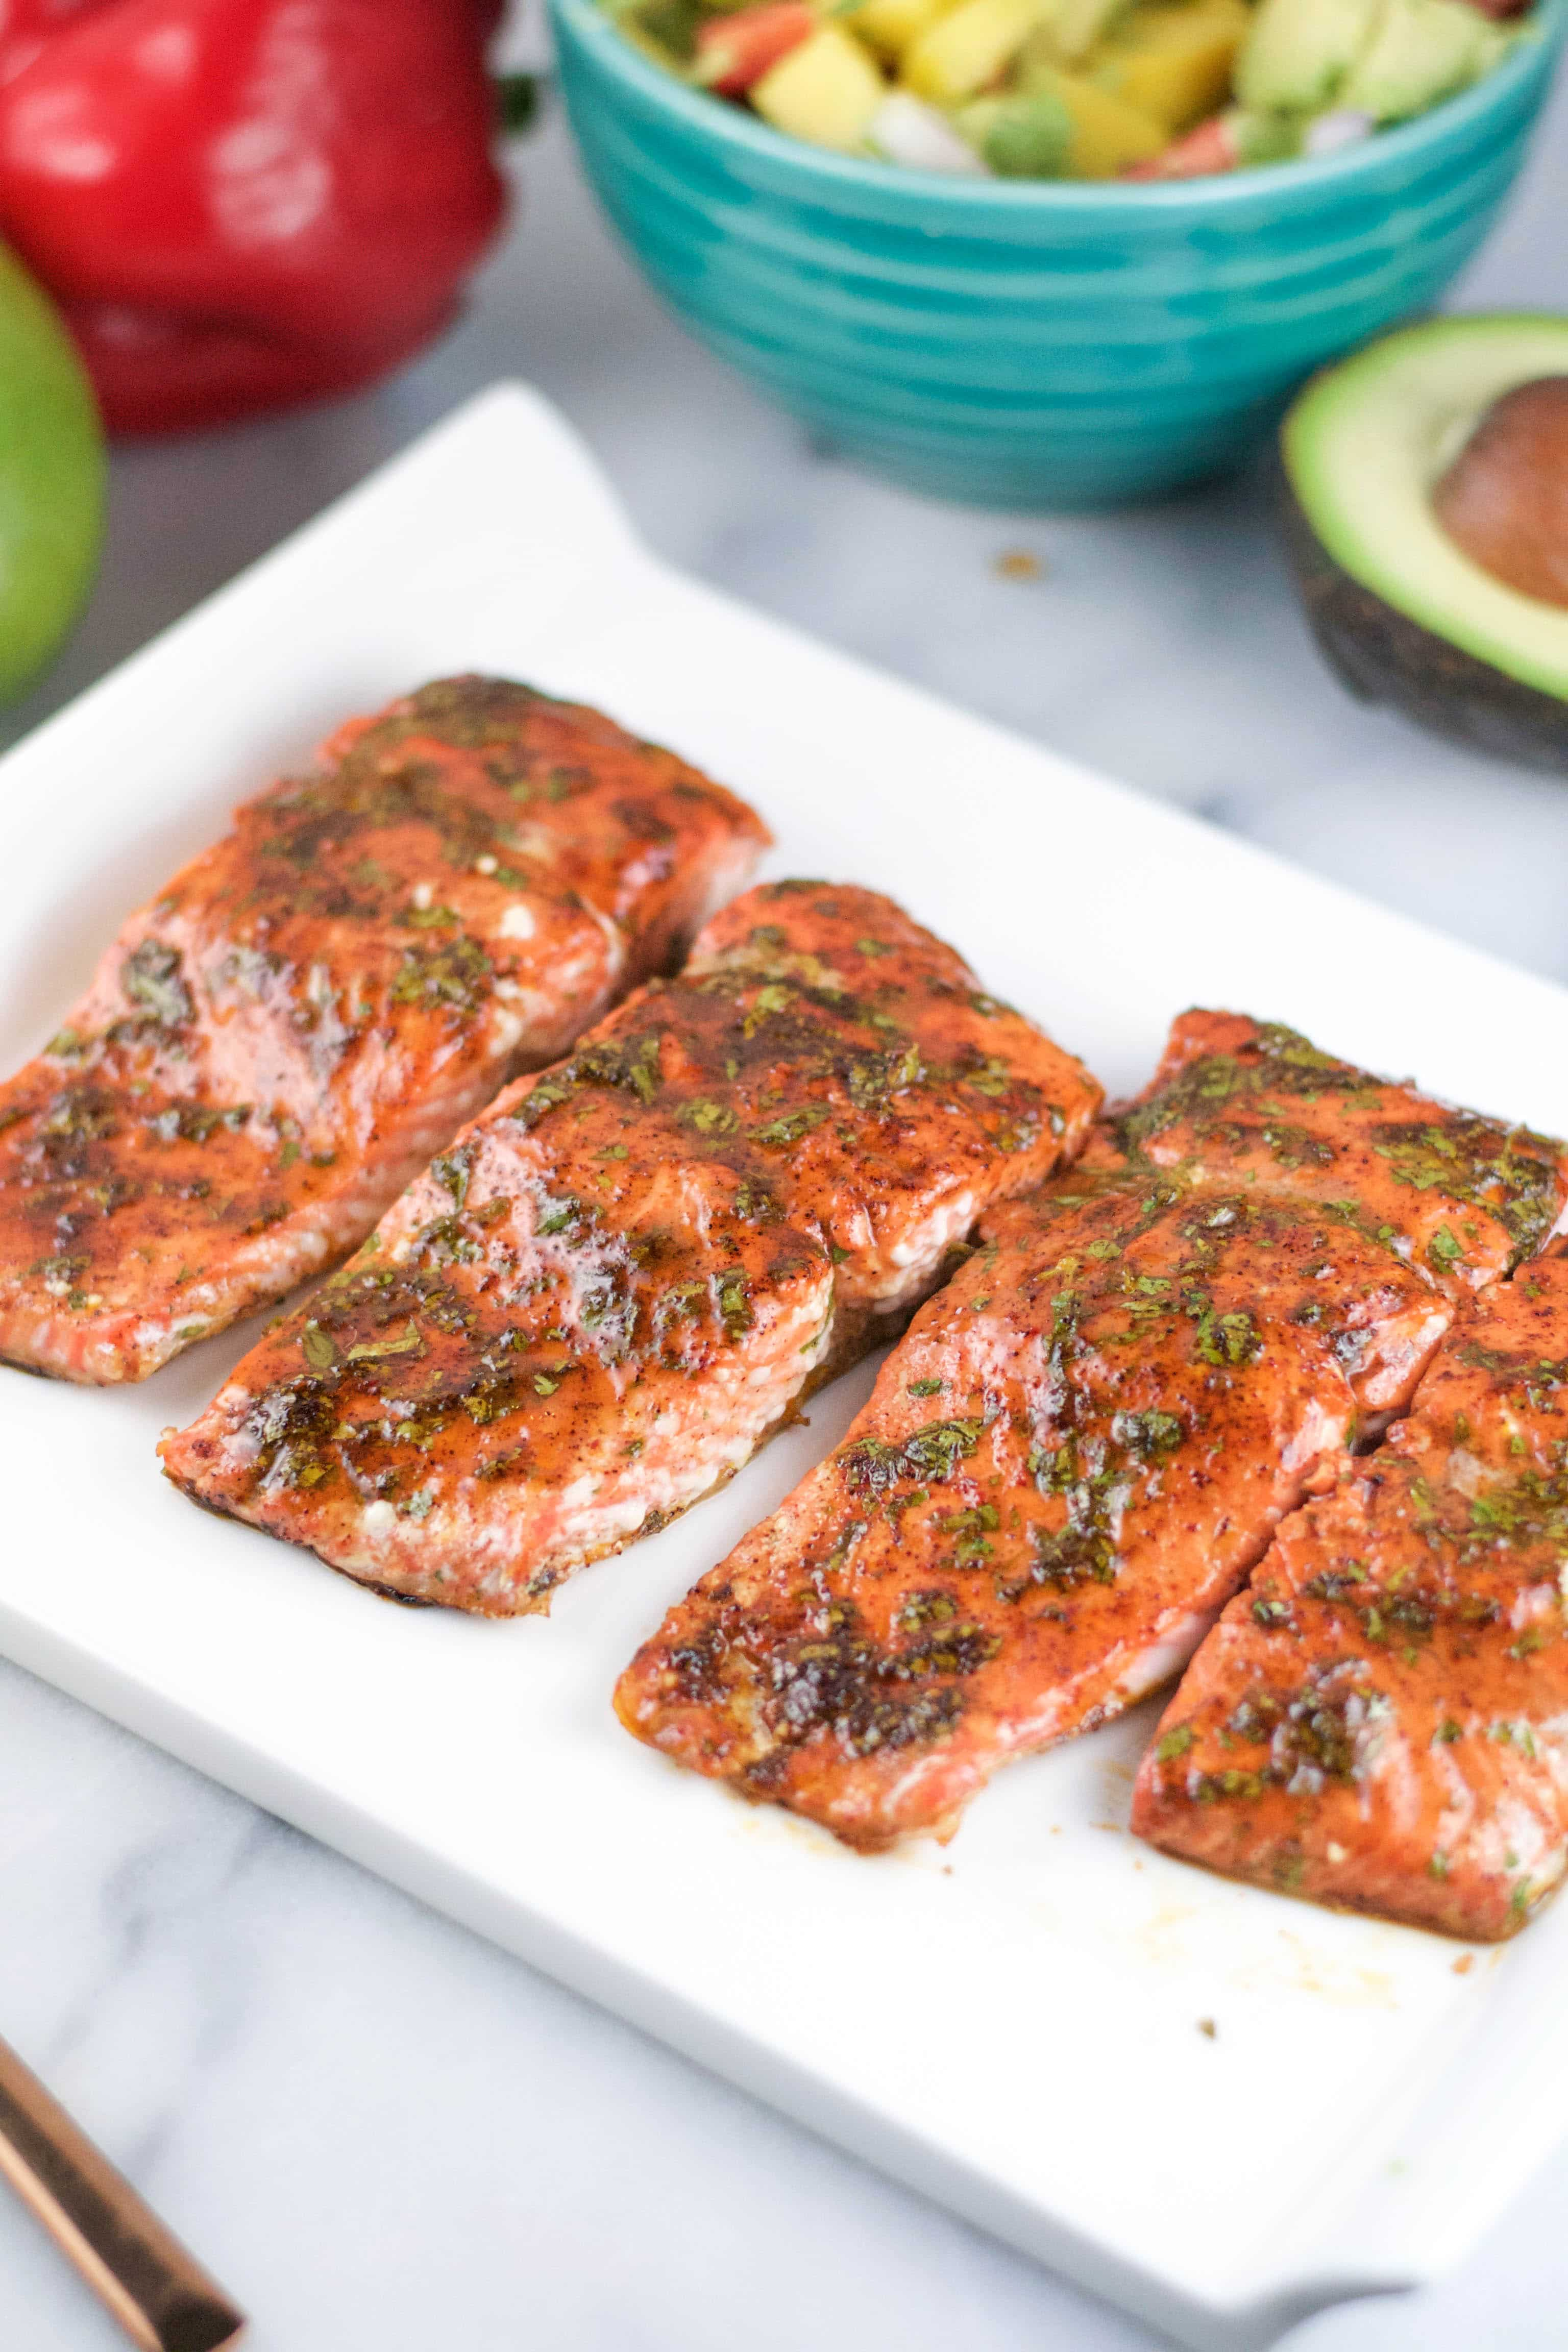 A platter of salmon portions with cilantro honey glaze on top.